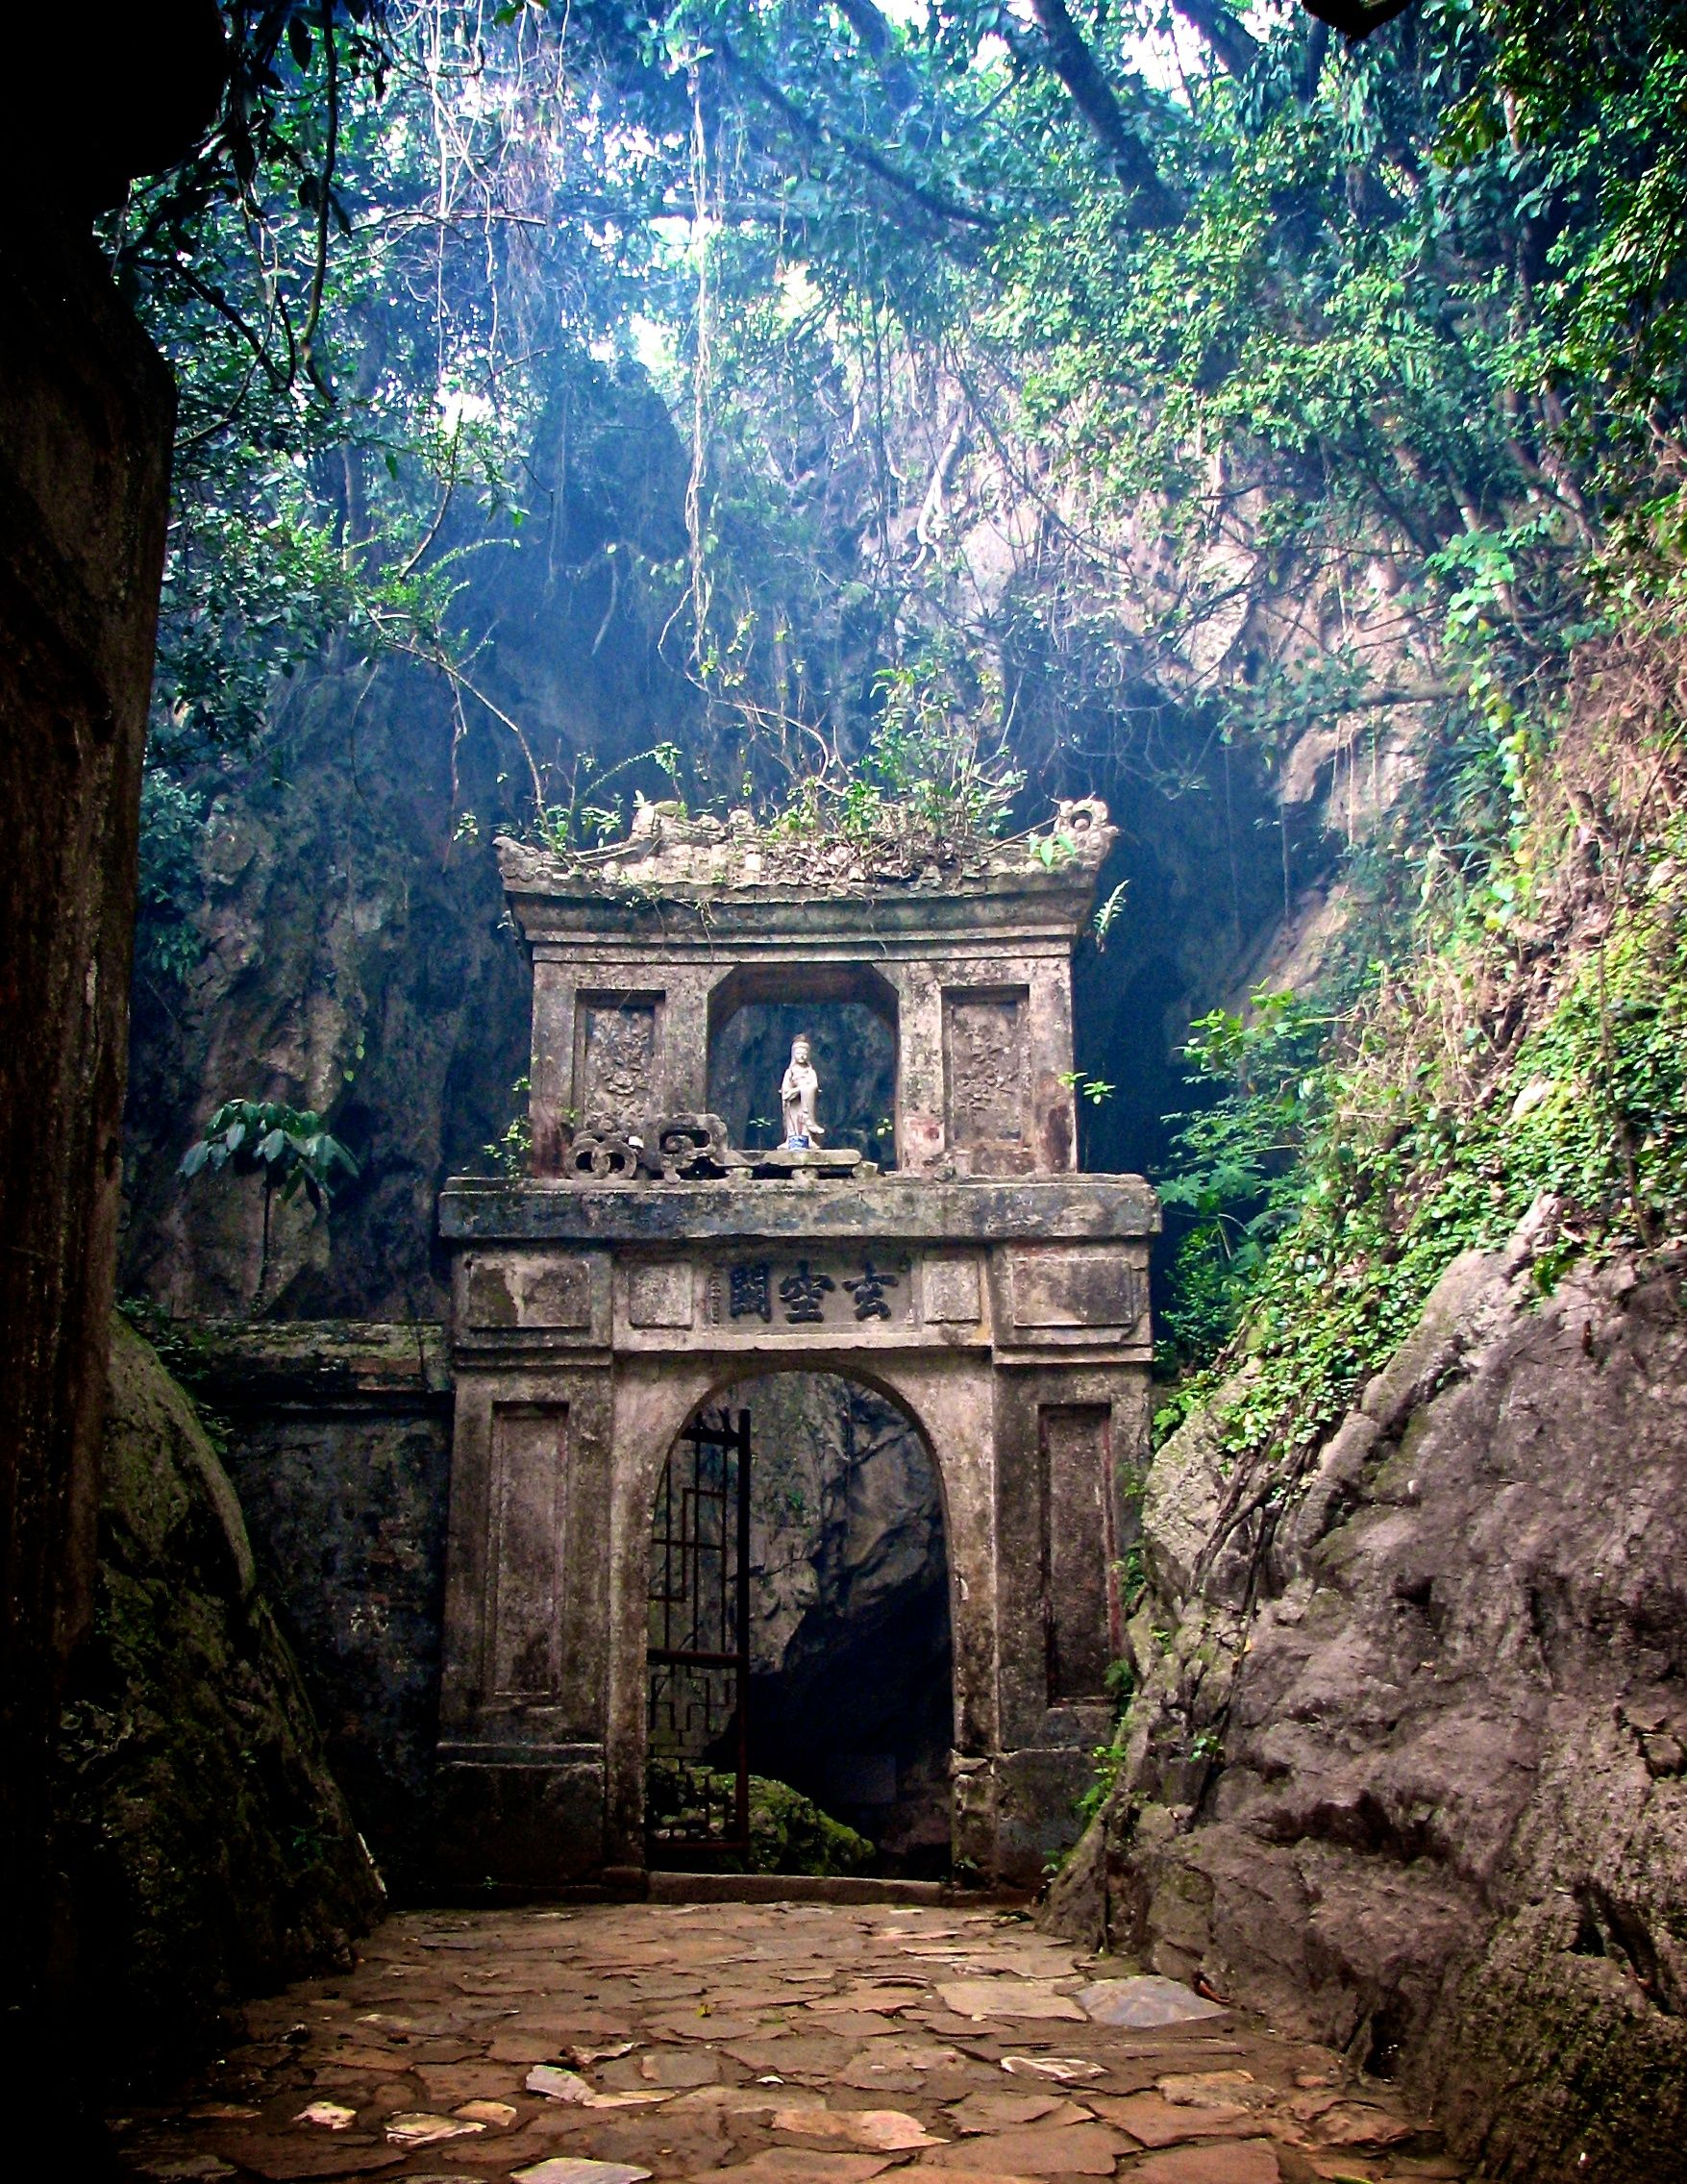 The incredible marble mountains of Vietnam.  Looks magical!